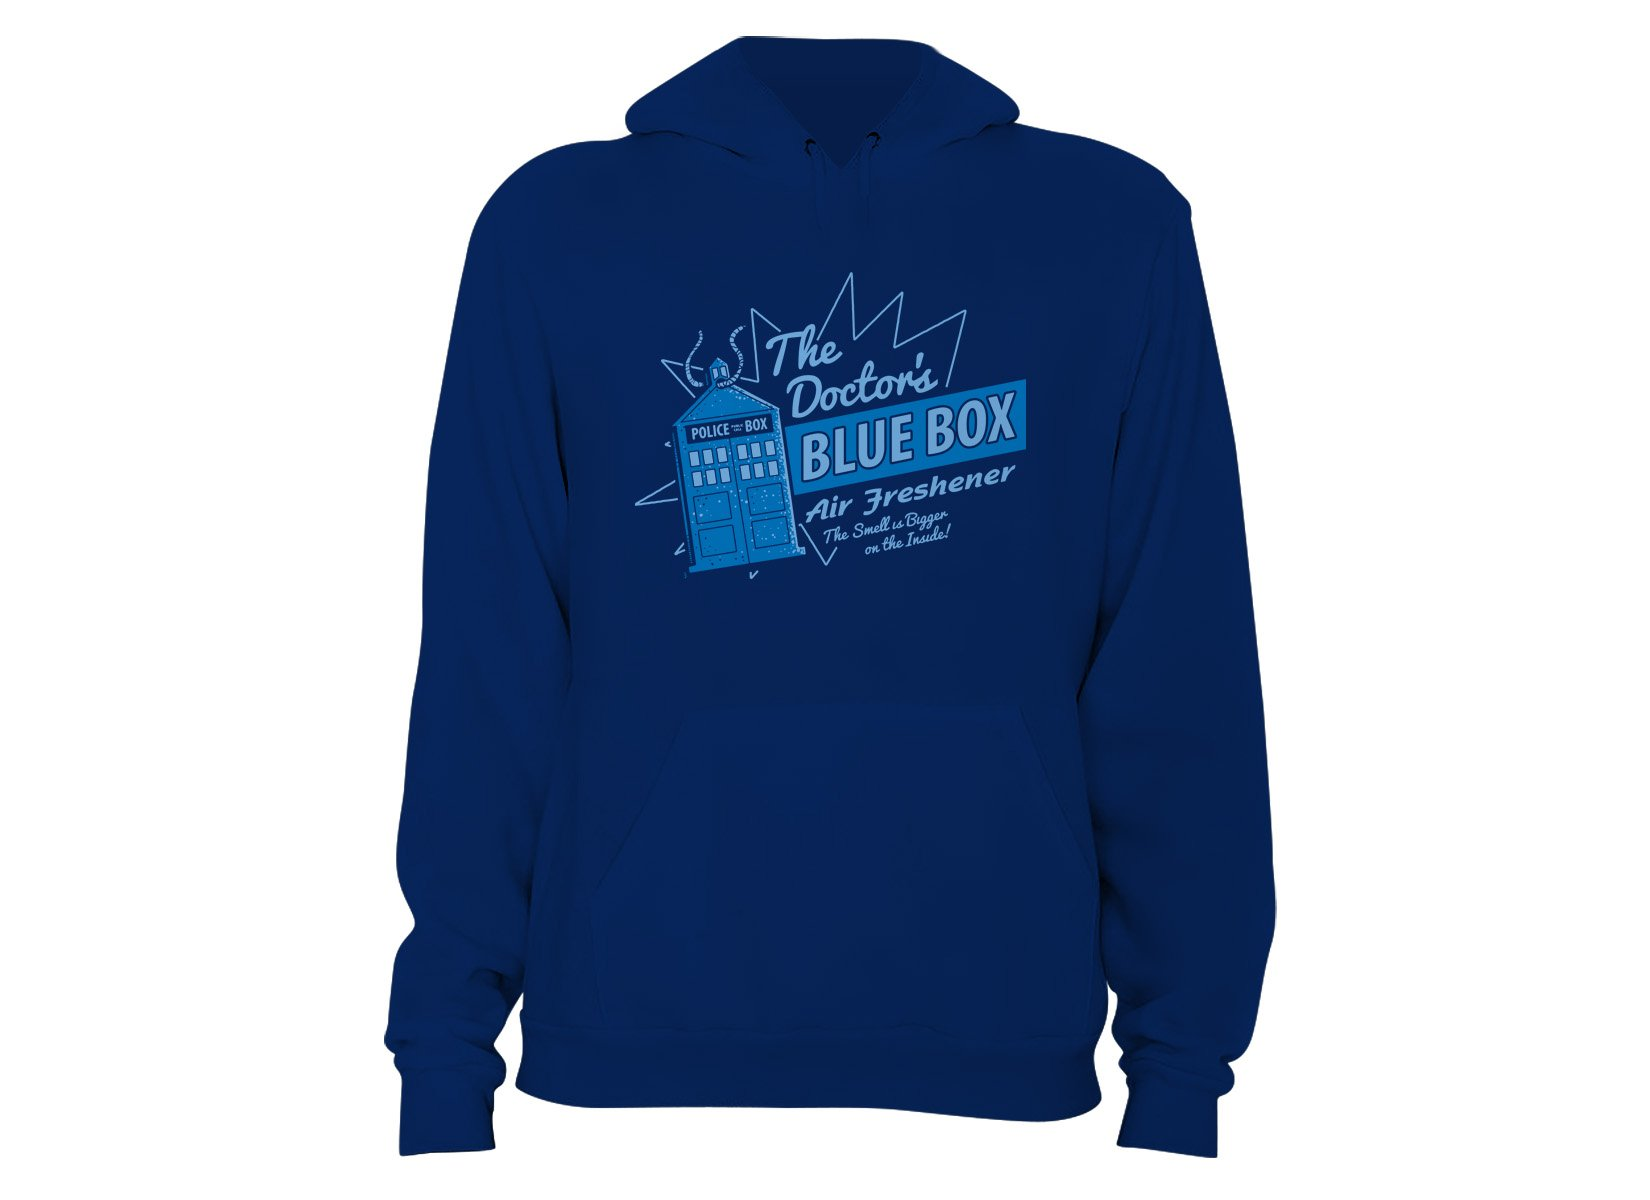 Blue Box Air Freshener on Hoodie